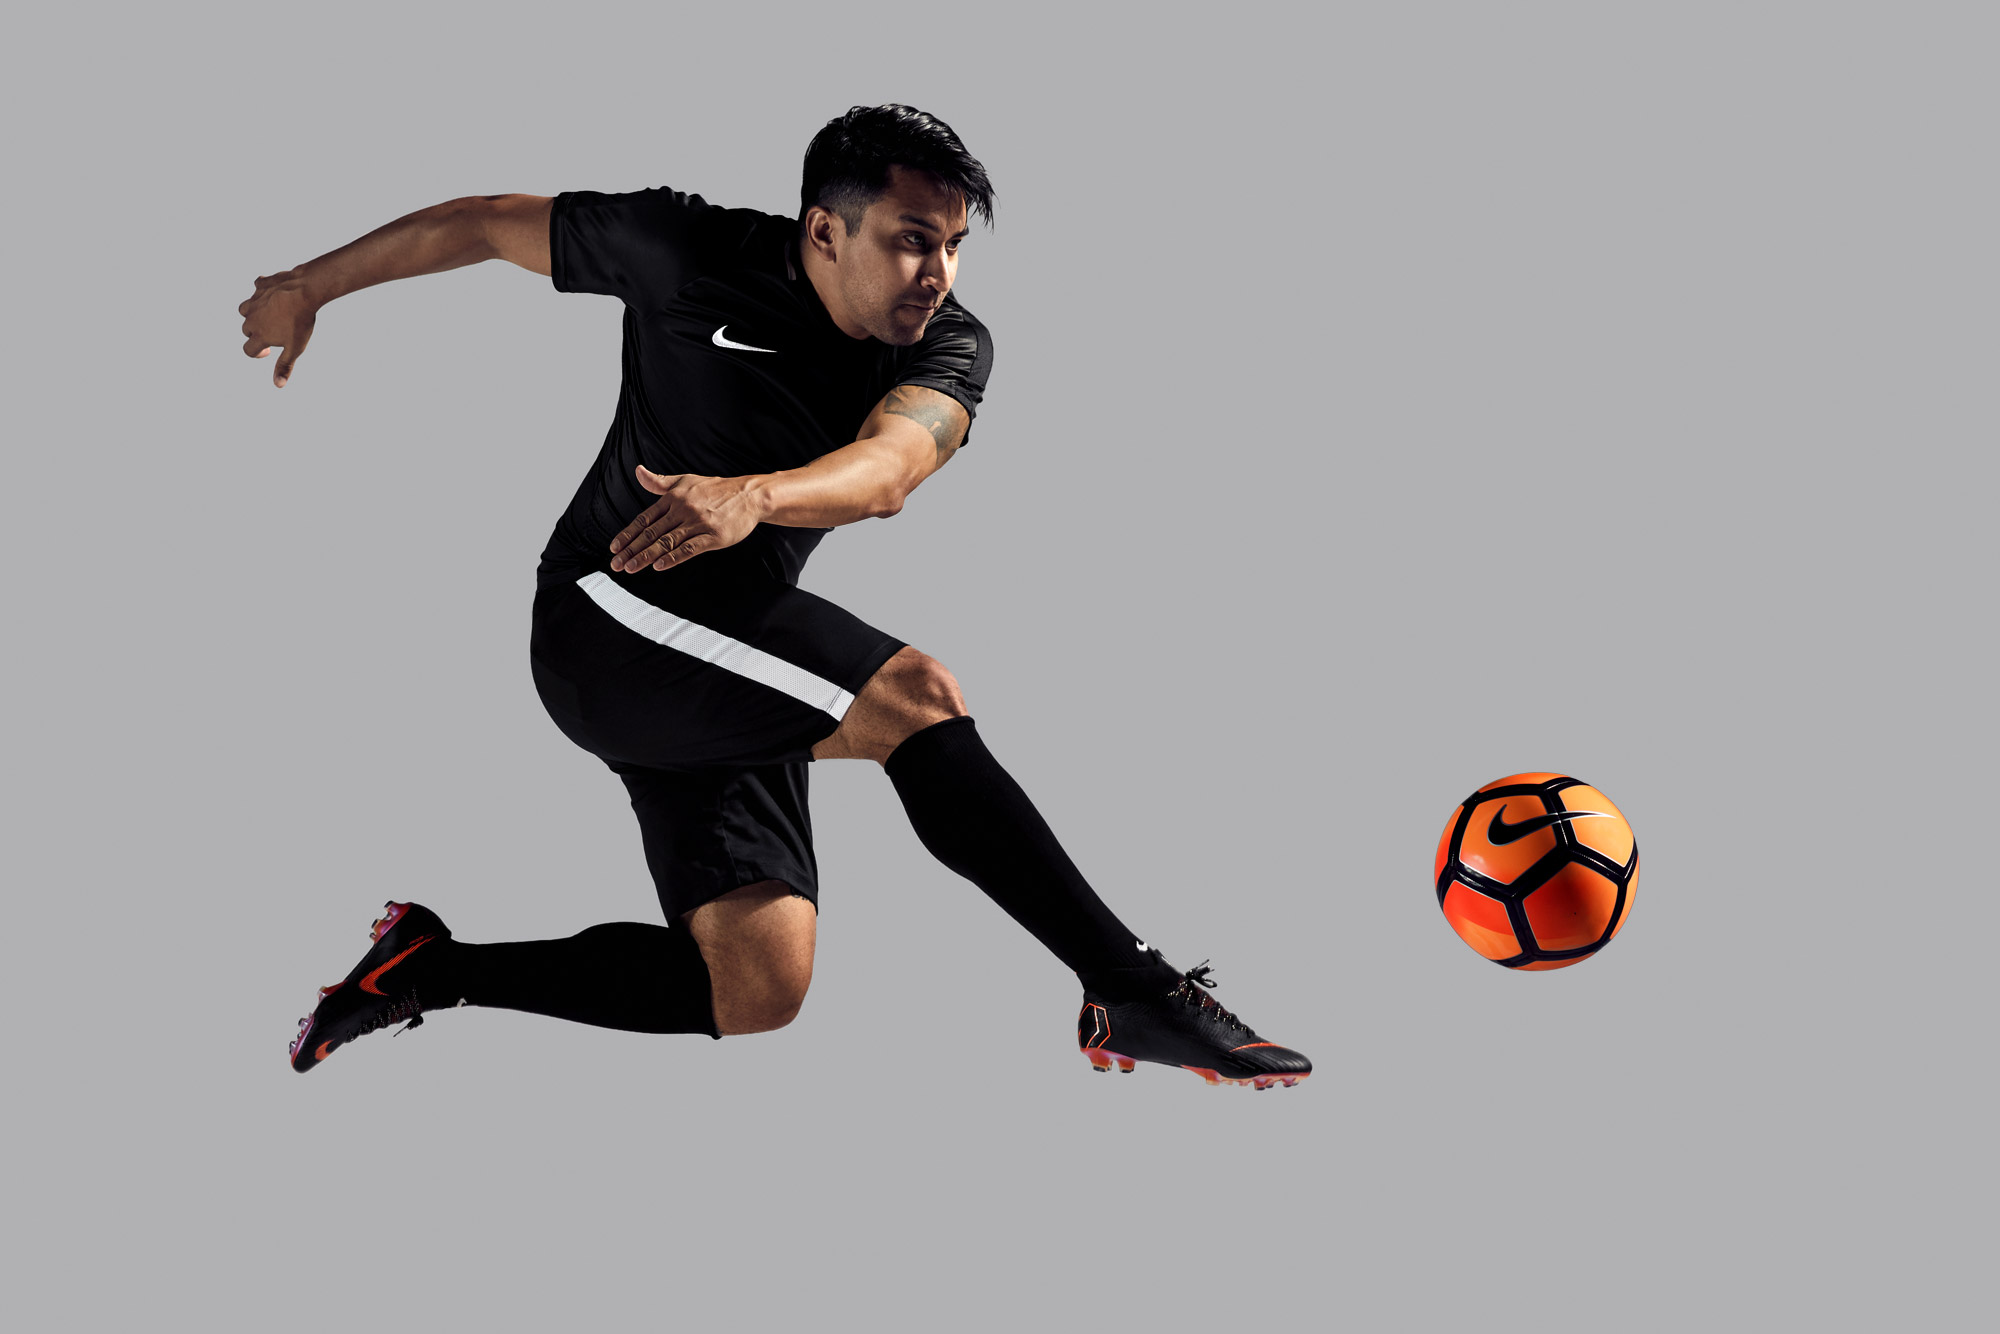 Nike Soccer  - Stephen Denton Photography - Phoenix AZ Commercial Photographer